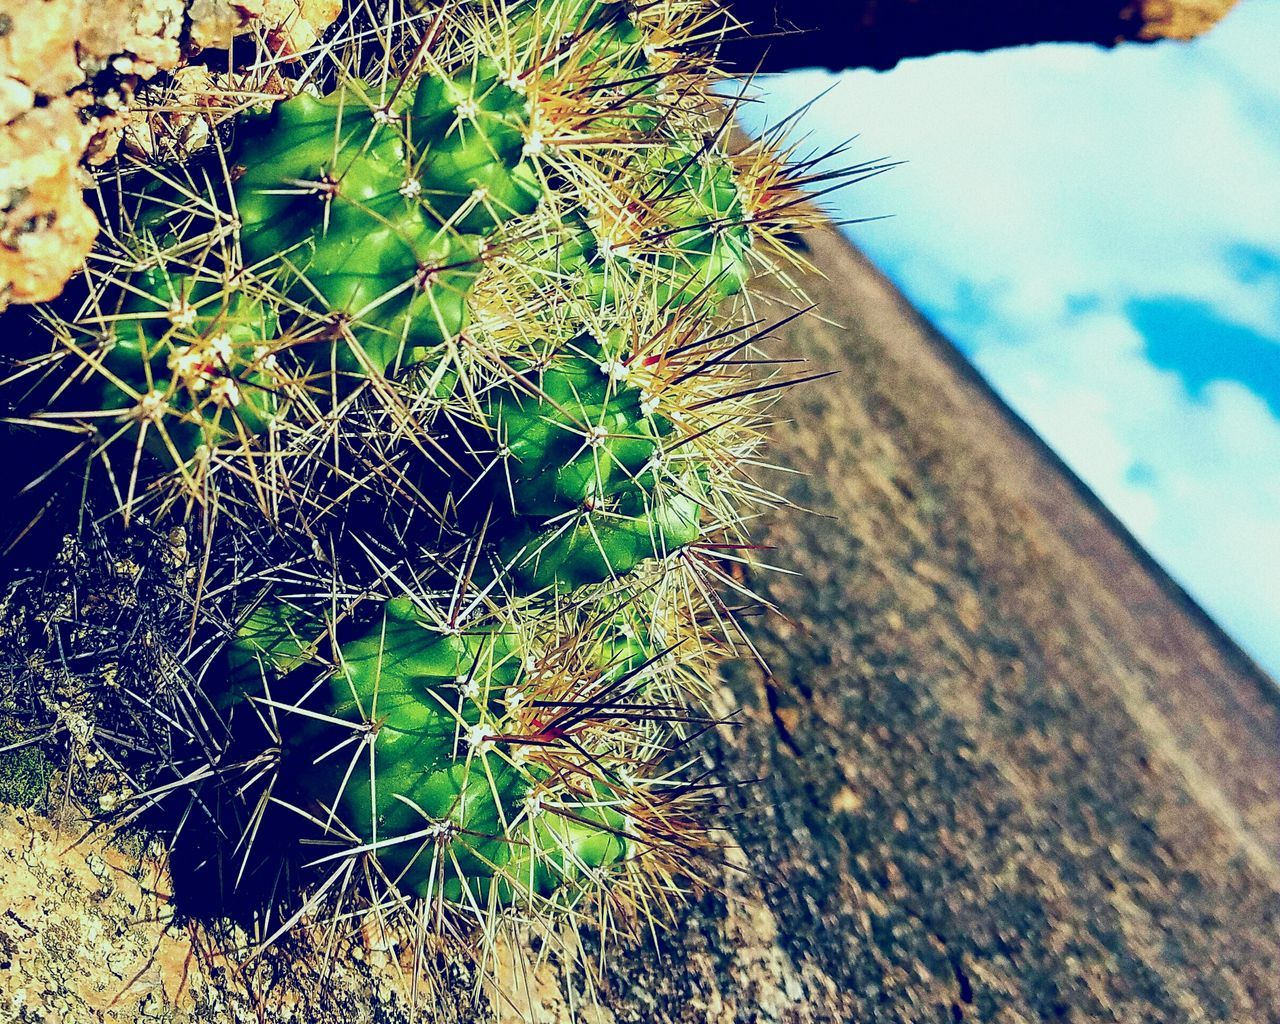 Close-up Nature Outdoors Focus On Foreground Non-urban Scene Vintage Grainy Texture Cactus Texas